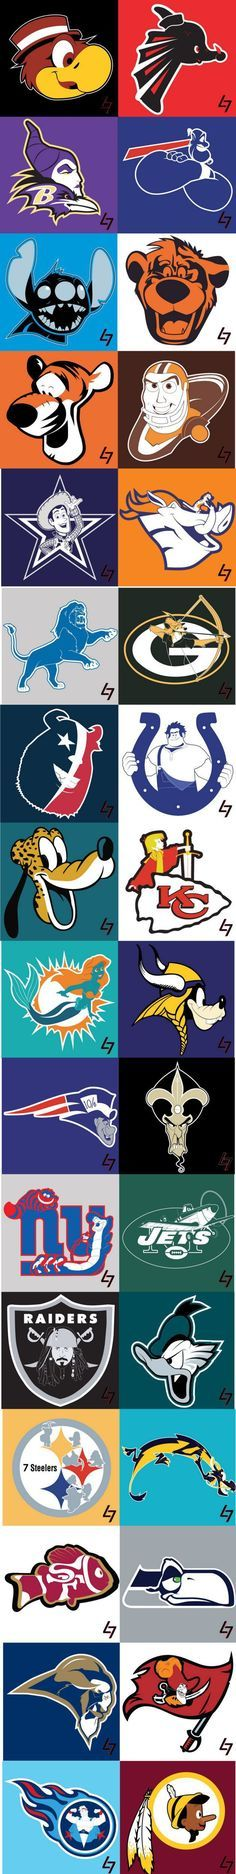 Epic NFL logos with Disney characters